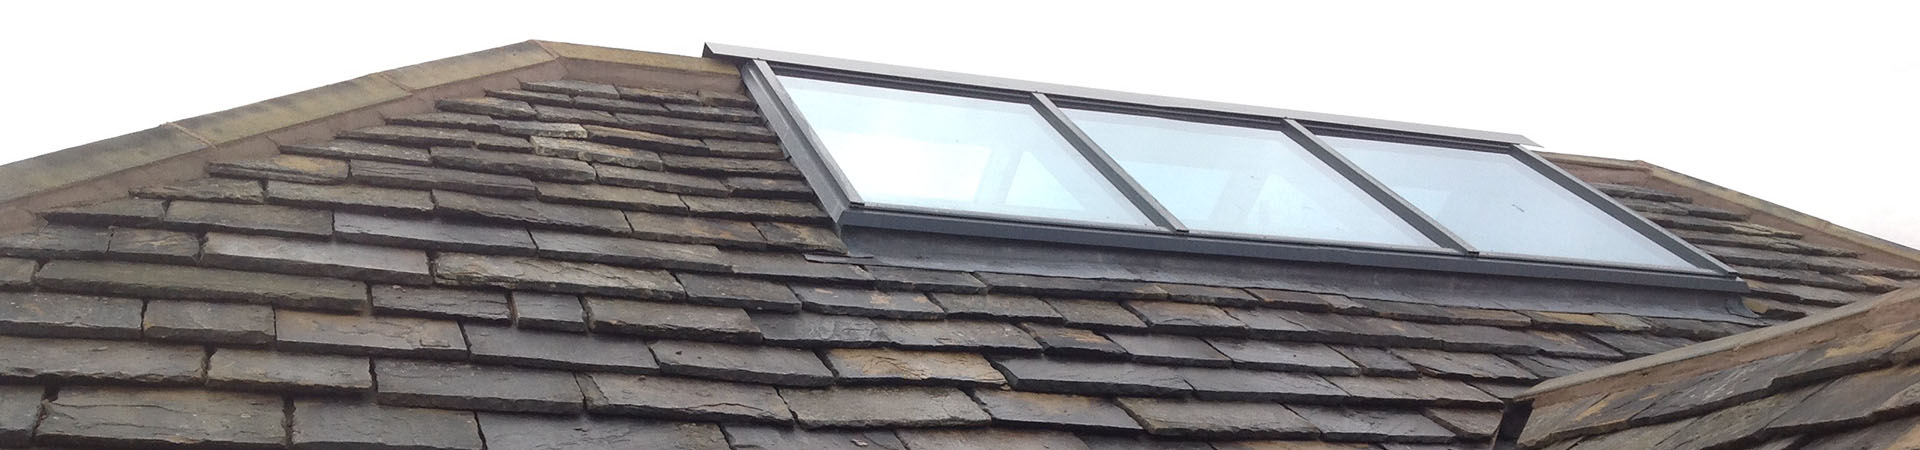 velux roof windows, roof windows